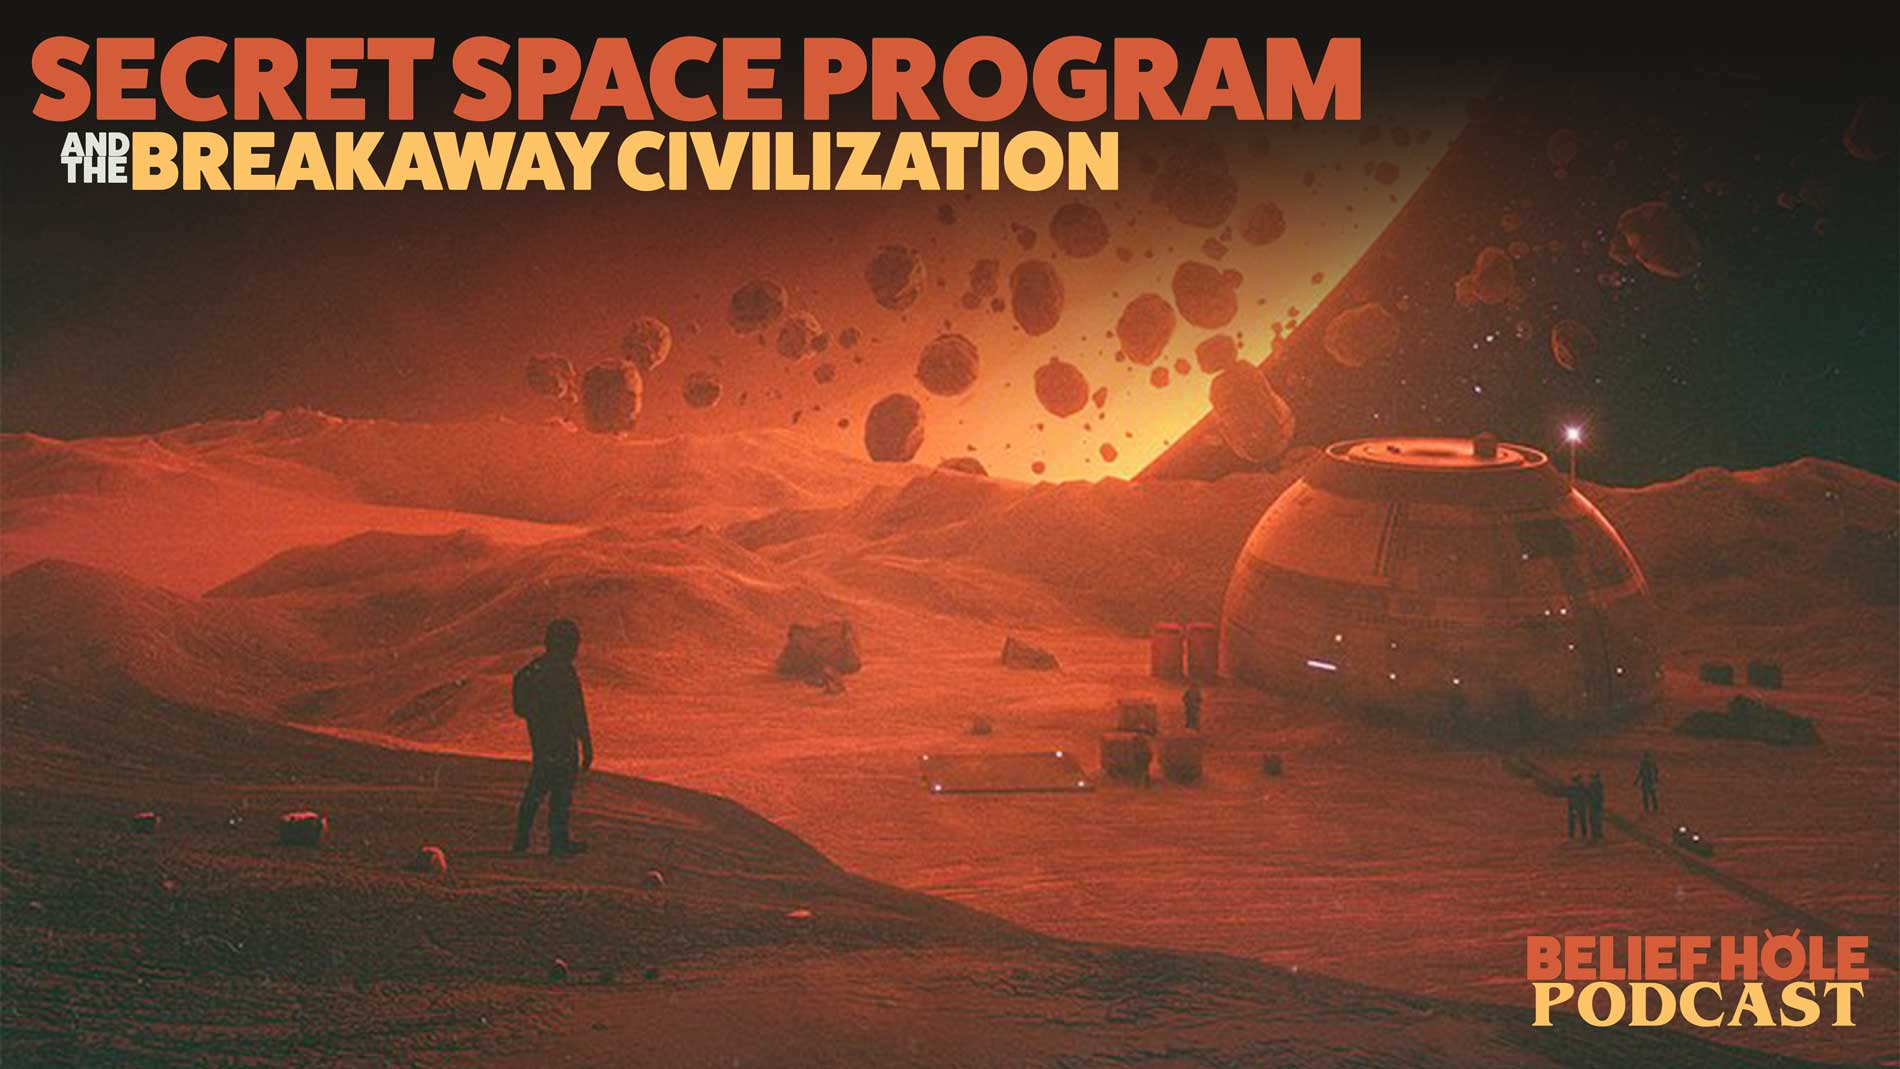 Secret Space Program - Breakaway Civilization - Podcast